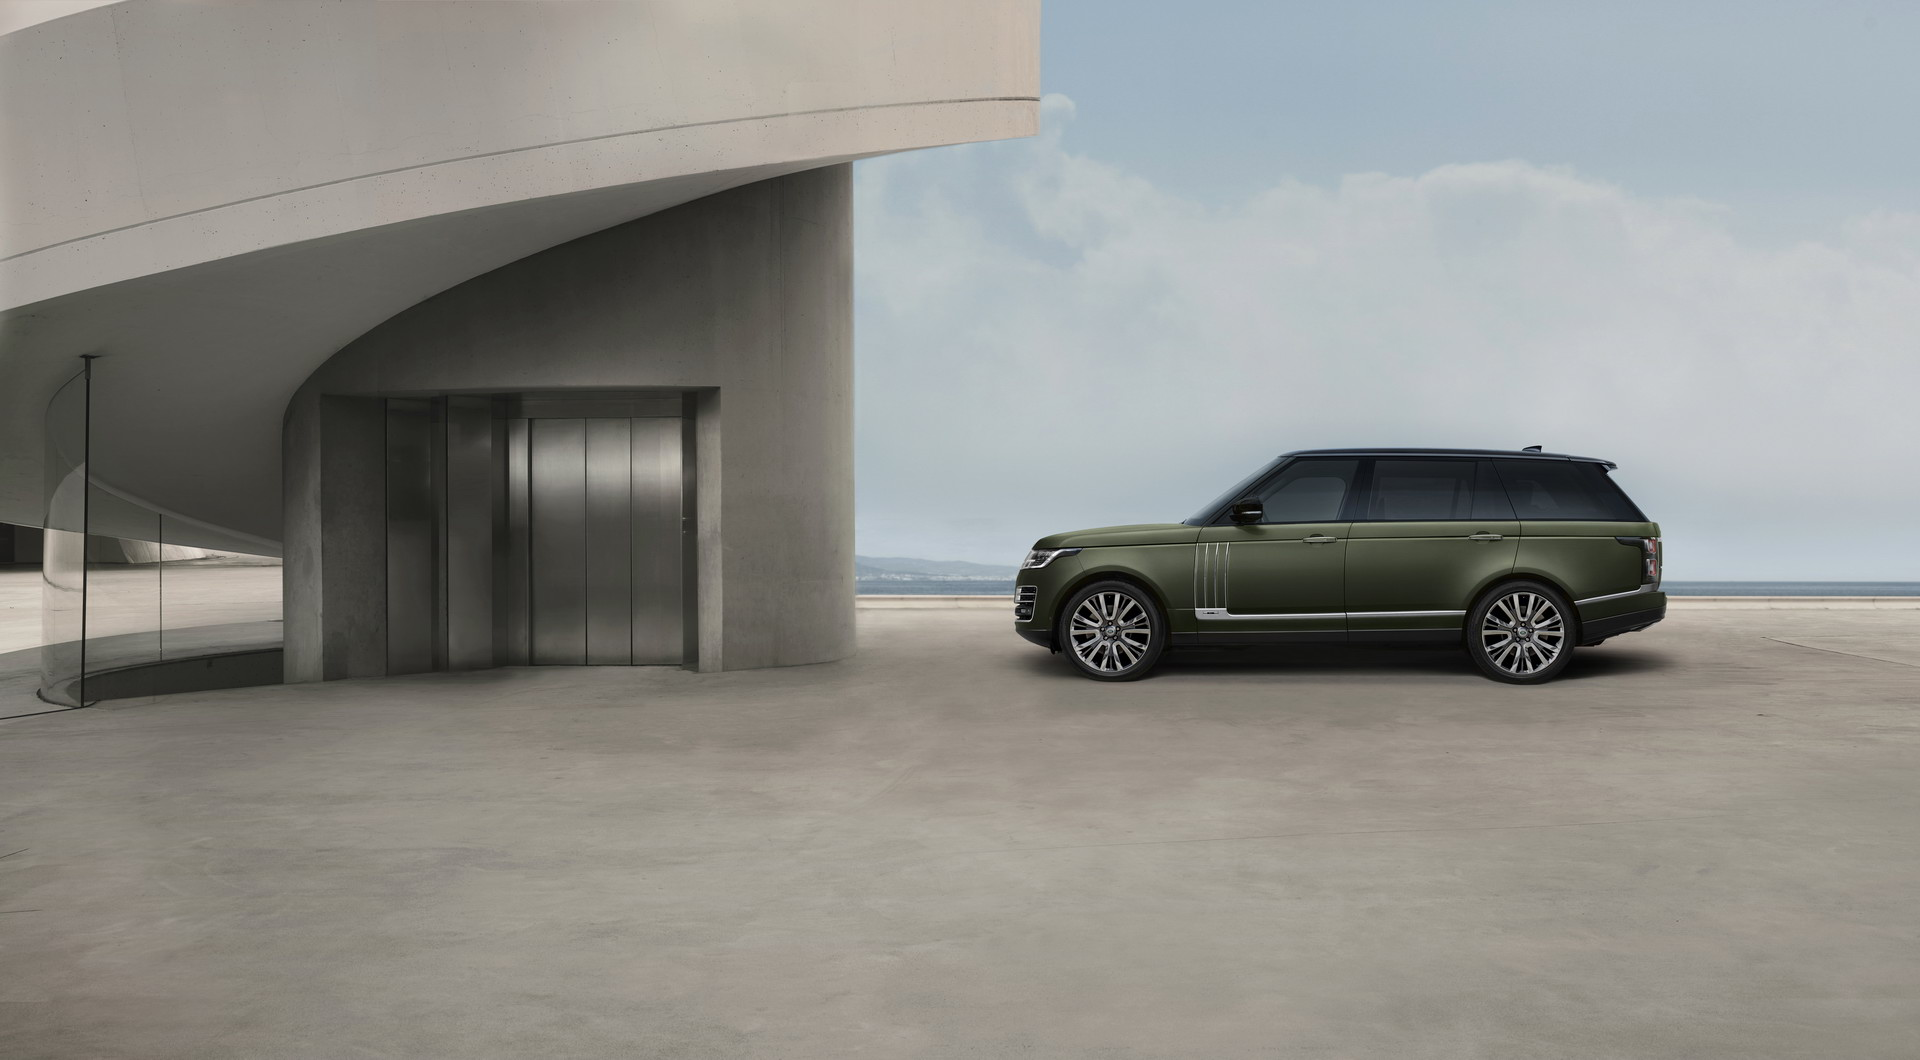 2021-range-rover-svautobiography-ultimate-editions-2